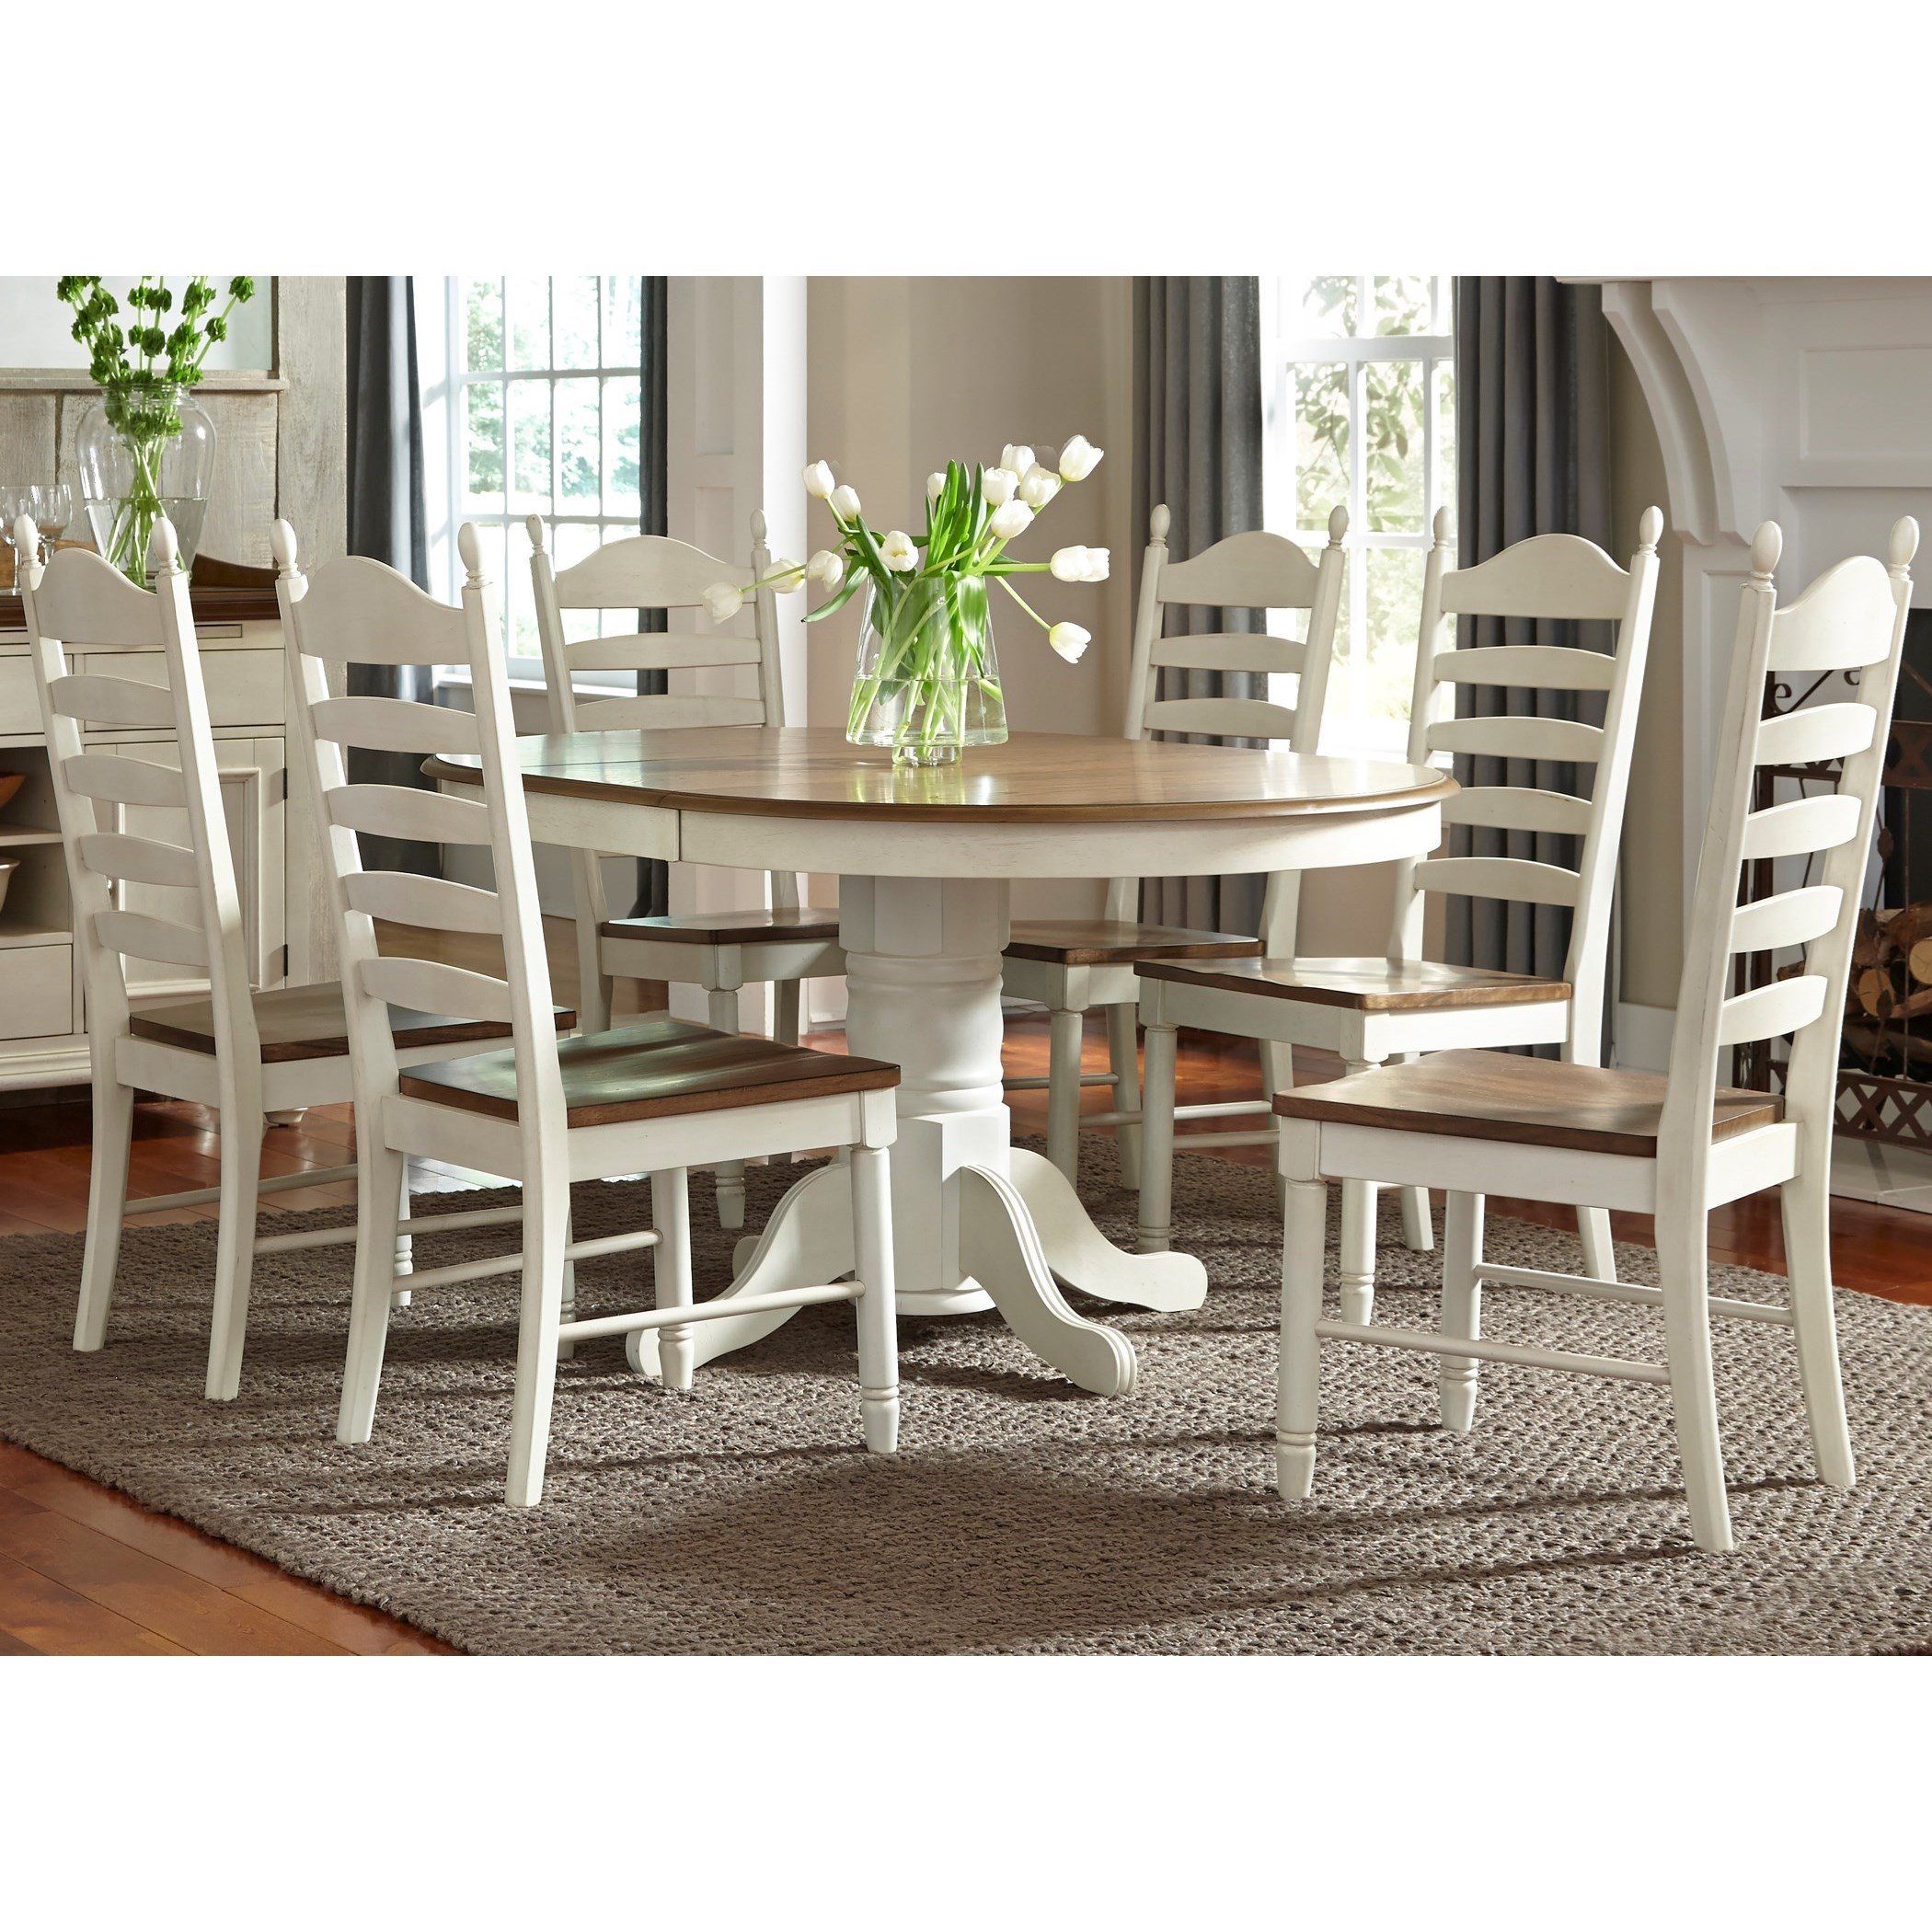 Springfield Dining 7 Piece Pedestal Table & Chair Set